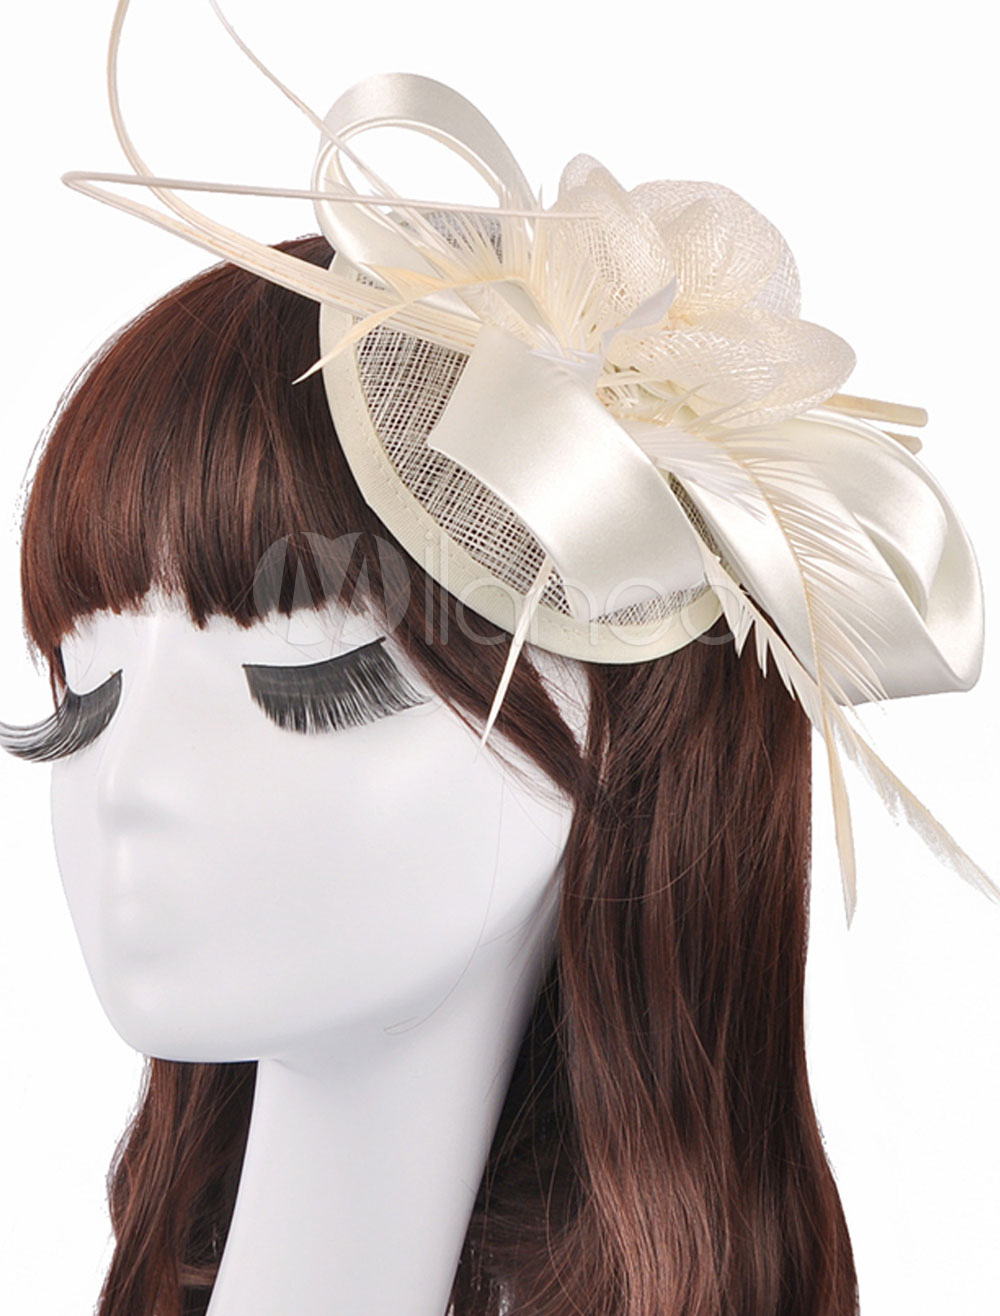 Buy Vintage Wedding Hats Satin Tulle Evening Hats With Feather for $22.99 in Milanoo store